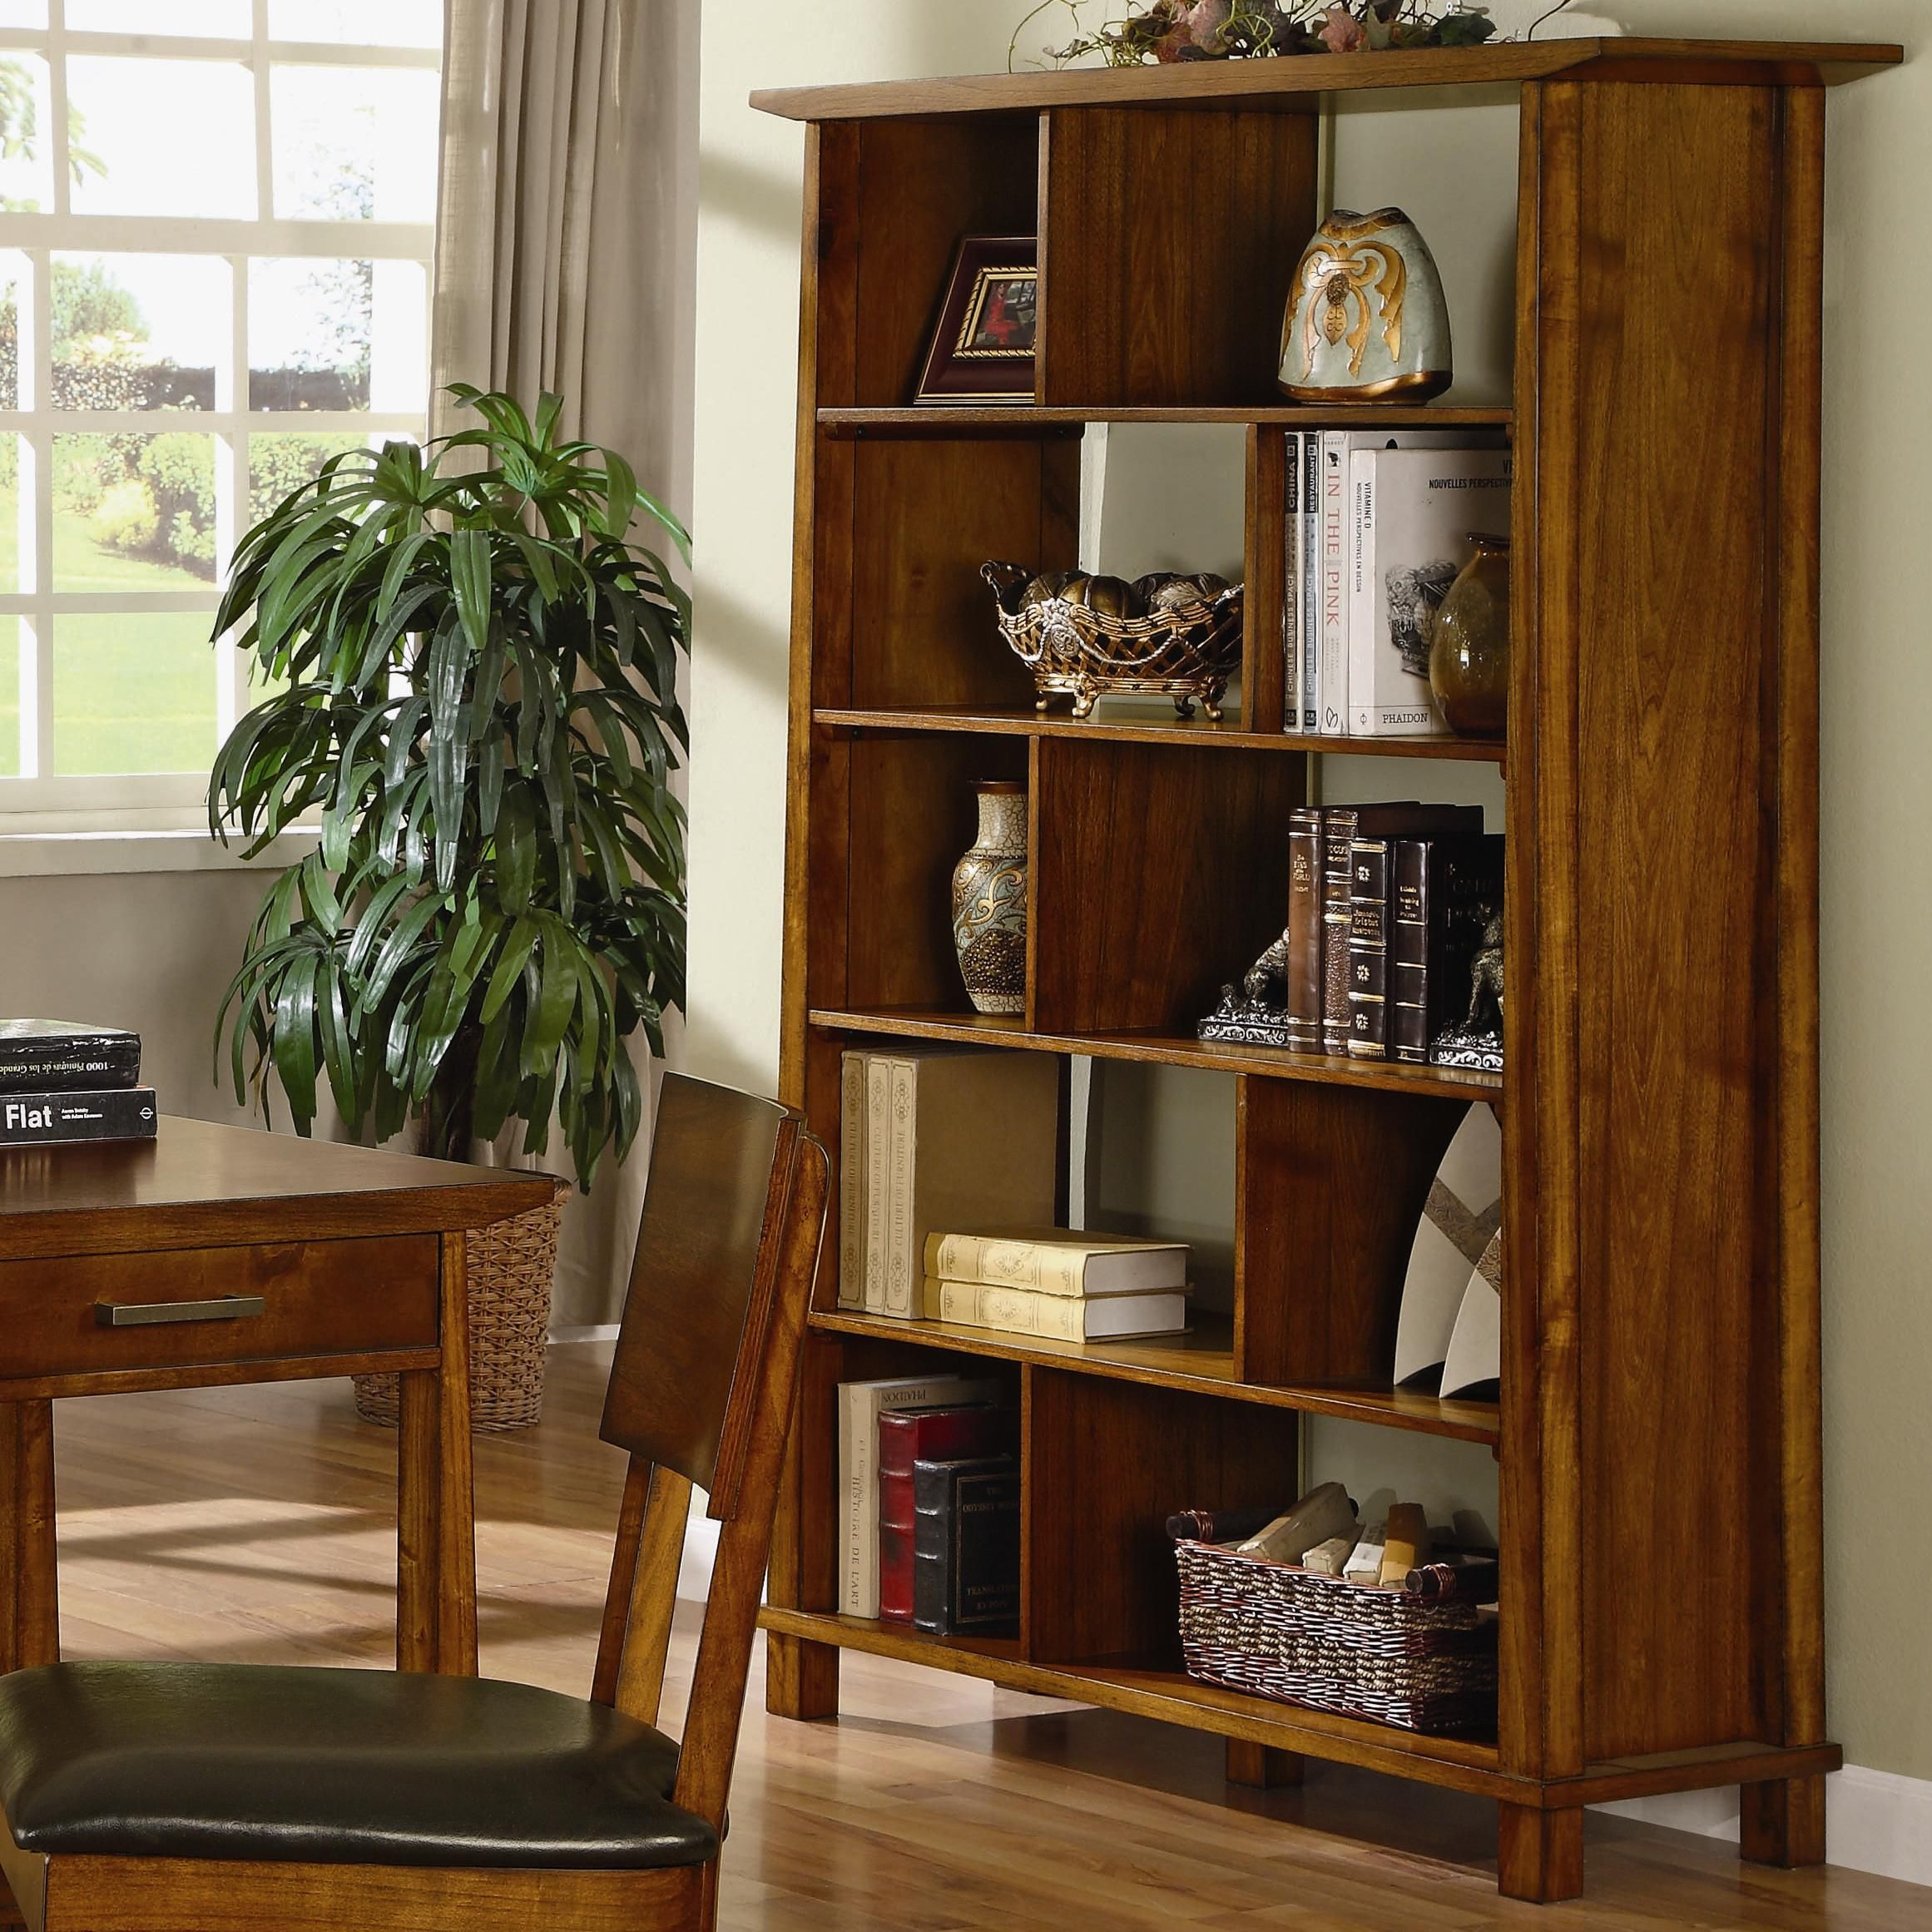 ideas these room home bookshelf a storage for decorating living from great create shelves with need the bookcases you inspiration life bookcase still